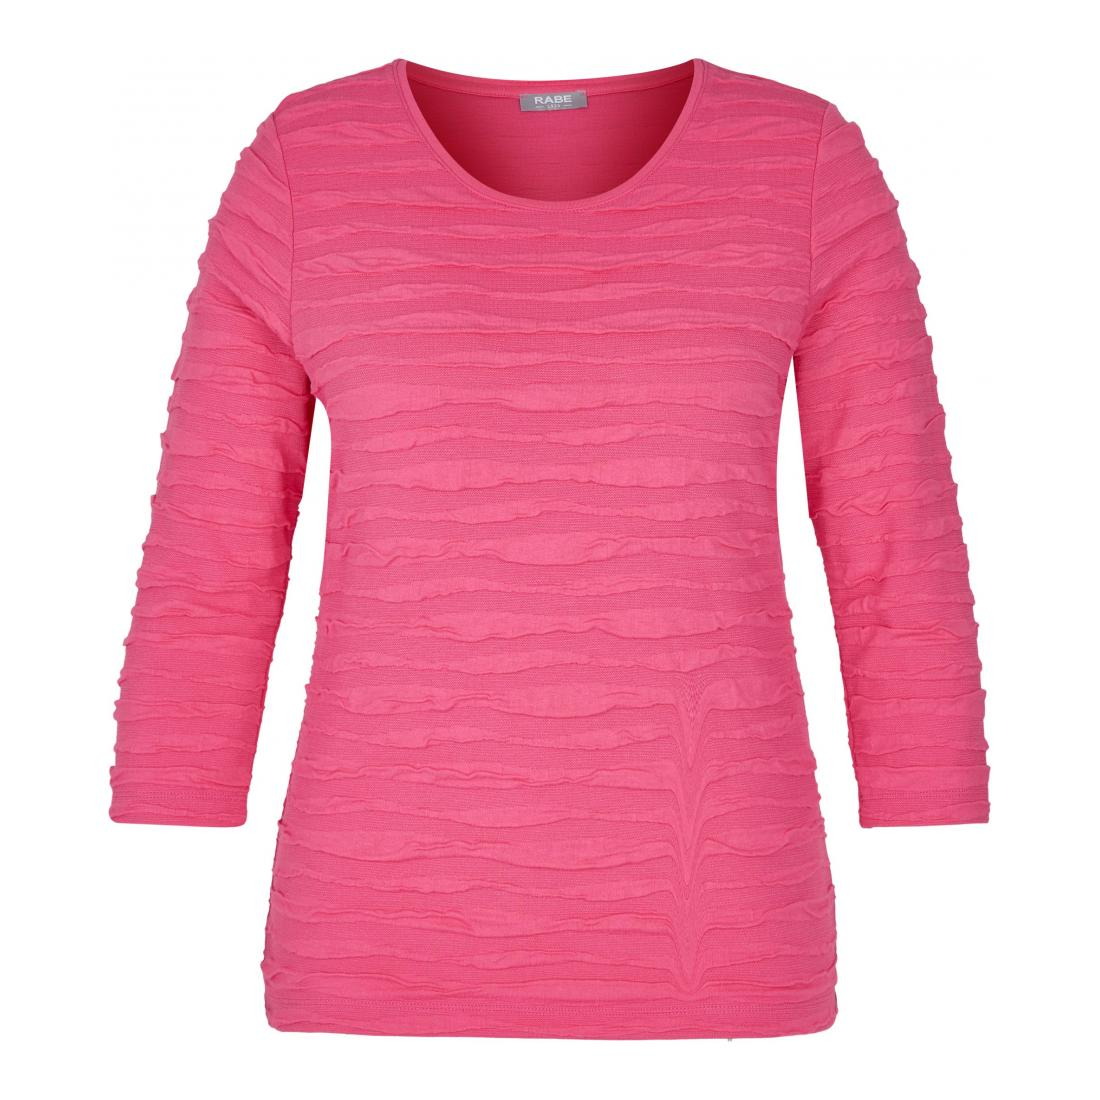 Rabe Longsleeves Damen T-Shirt